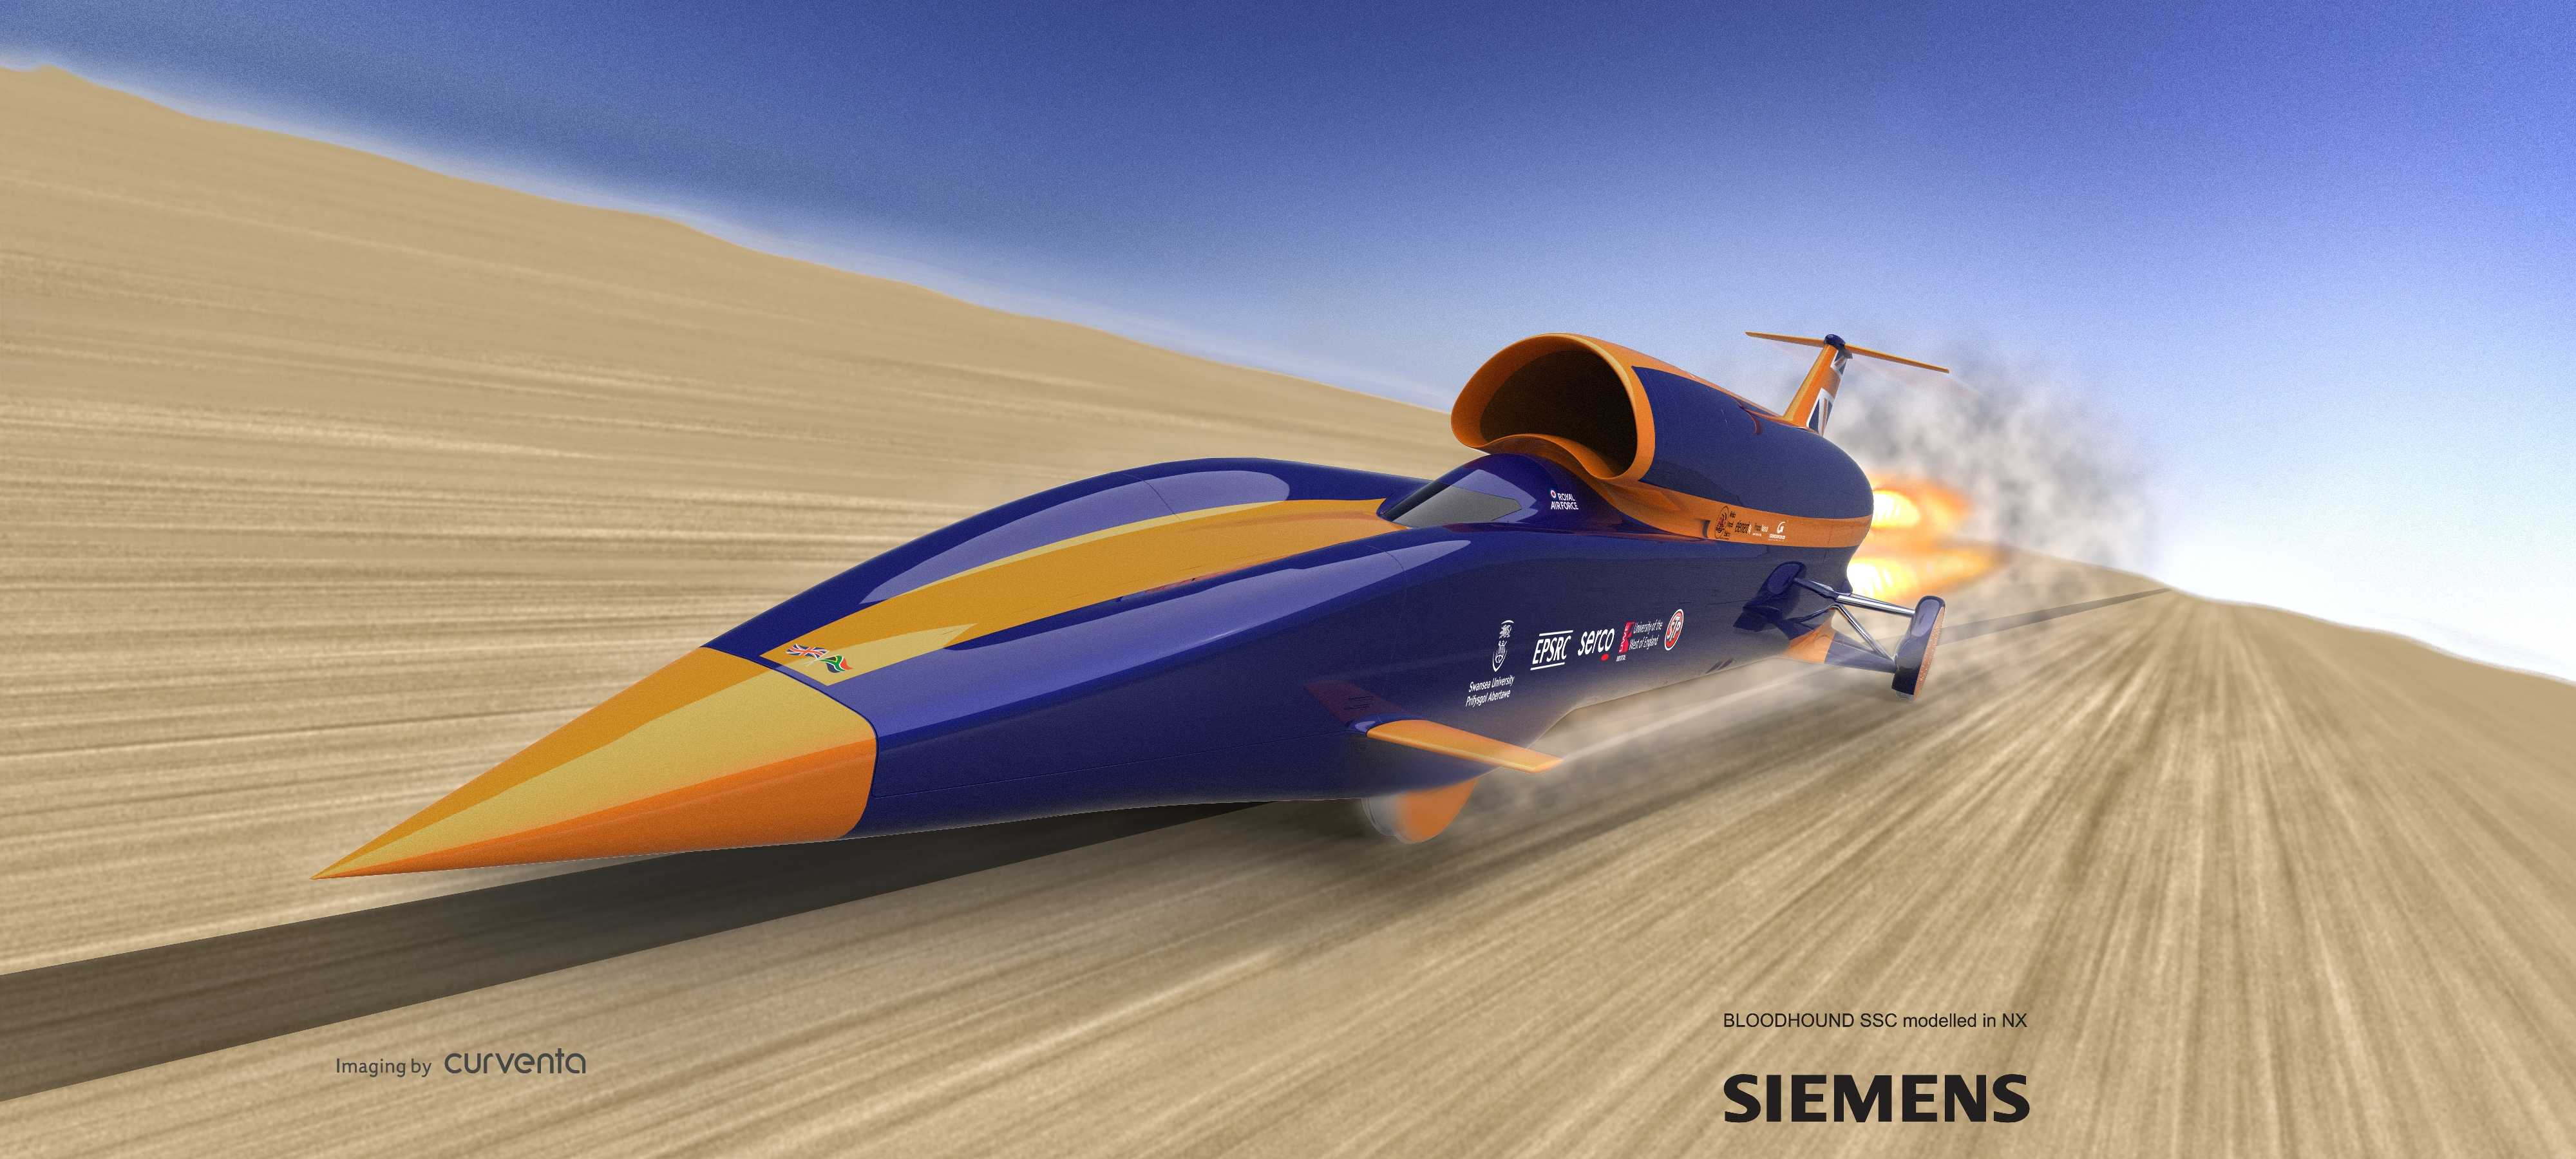 of the Bloodhound SSC.